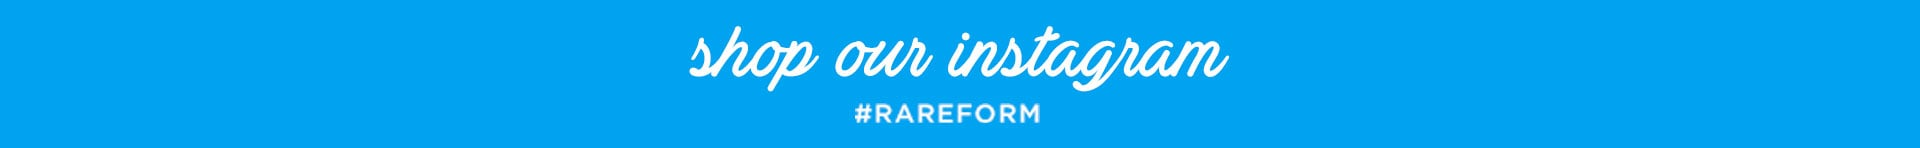 Shop Rareform Instagram @Rareform